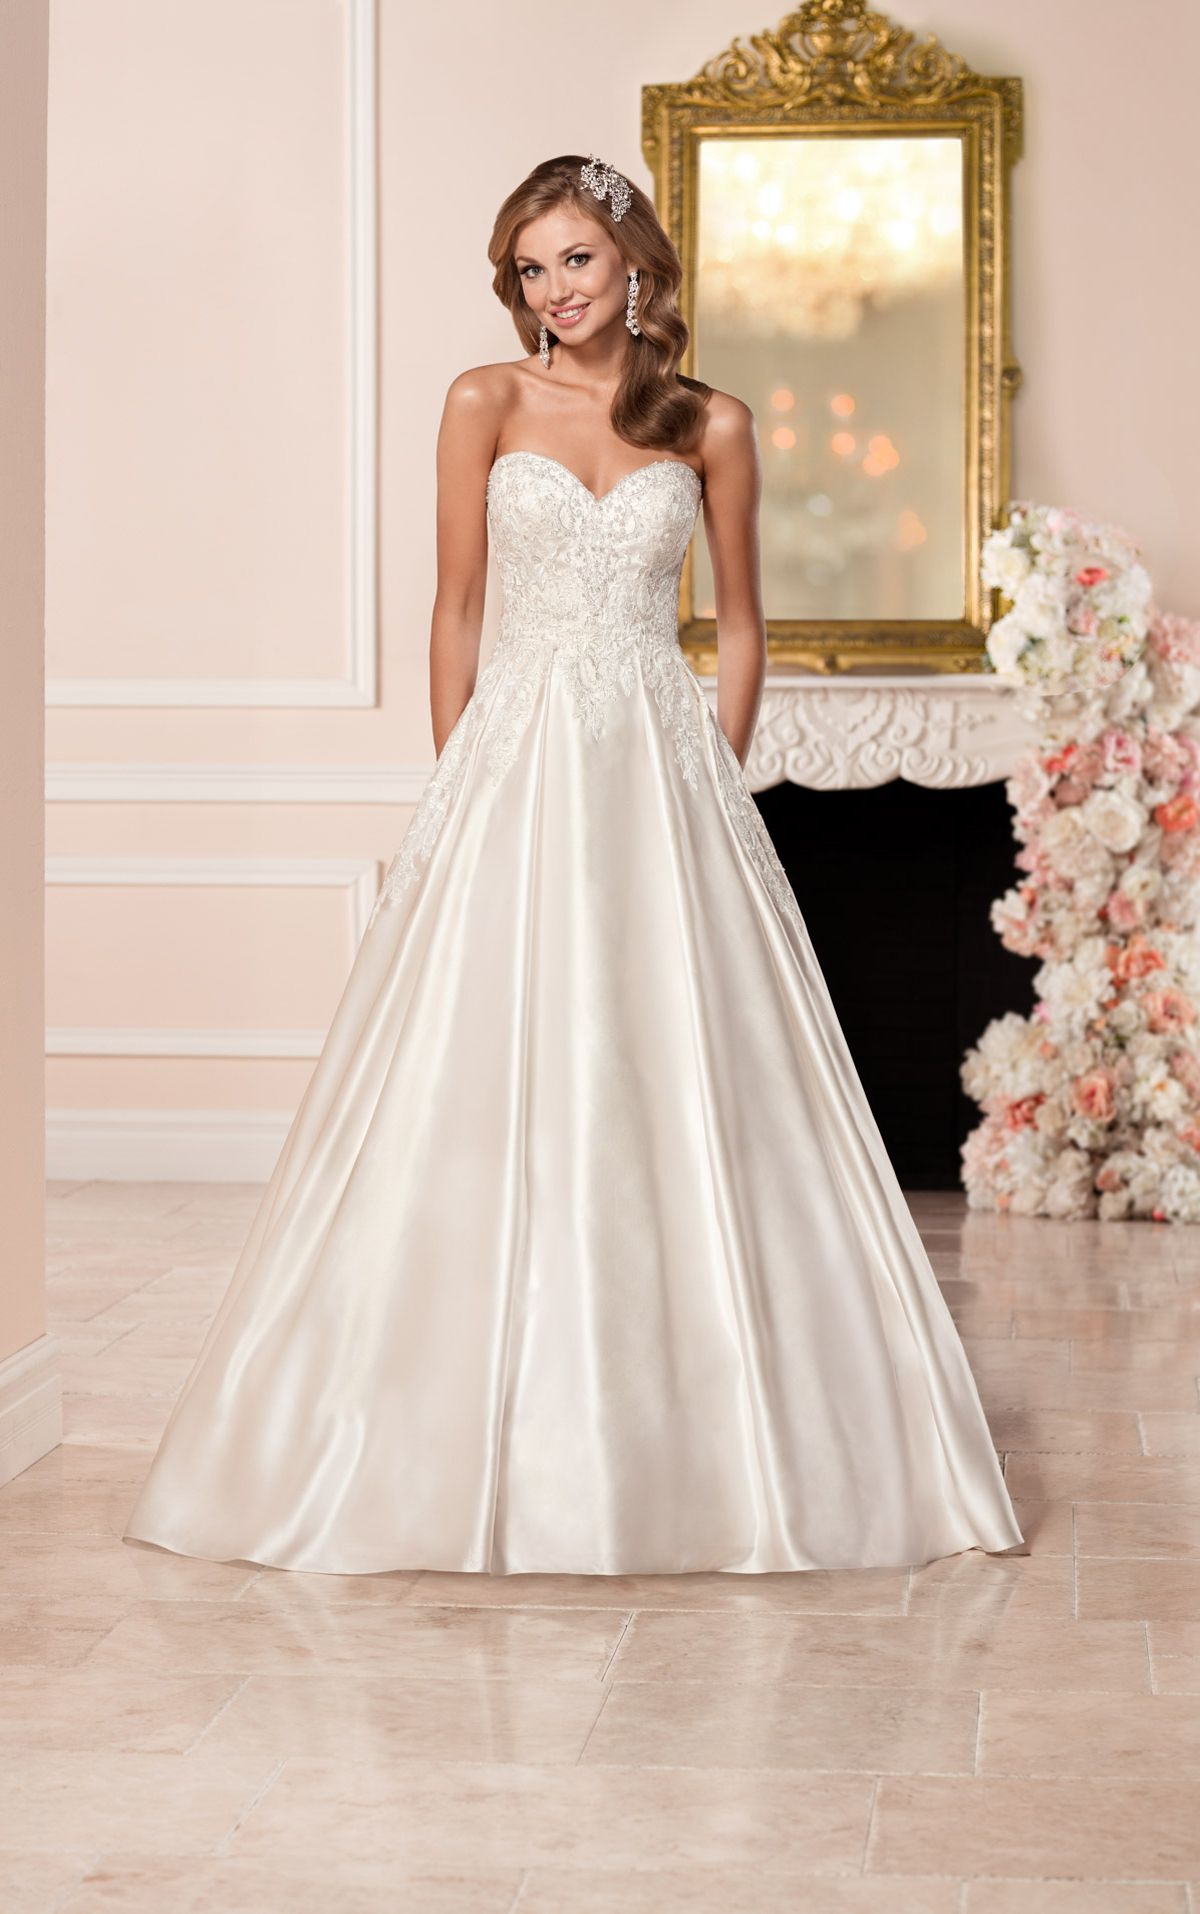 Satin wedding dress and its features 7